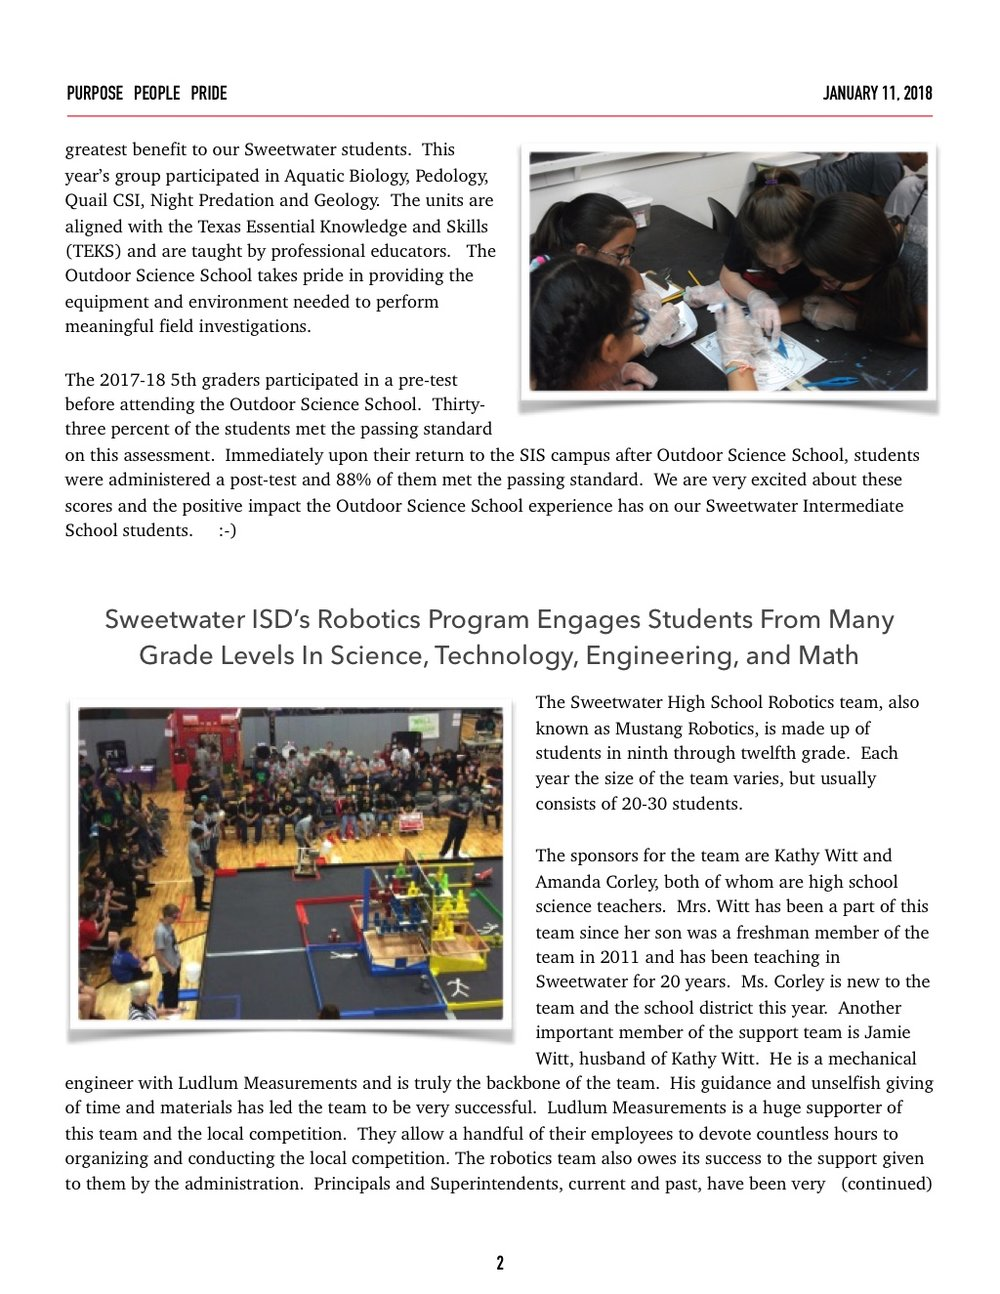 SISD Newsletter January 2018 copy-2.jpg